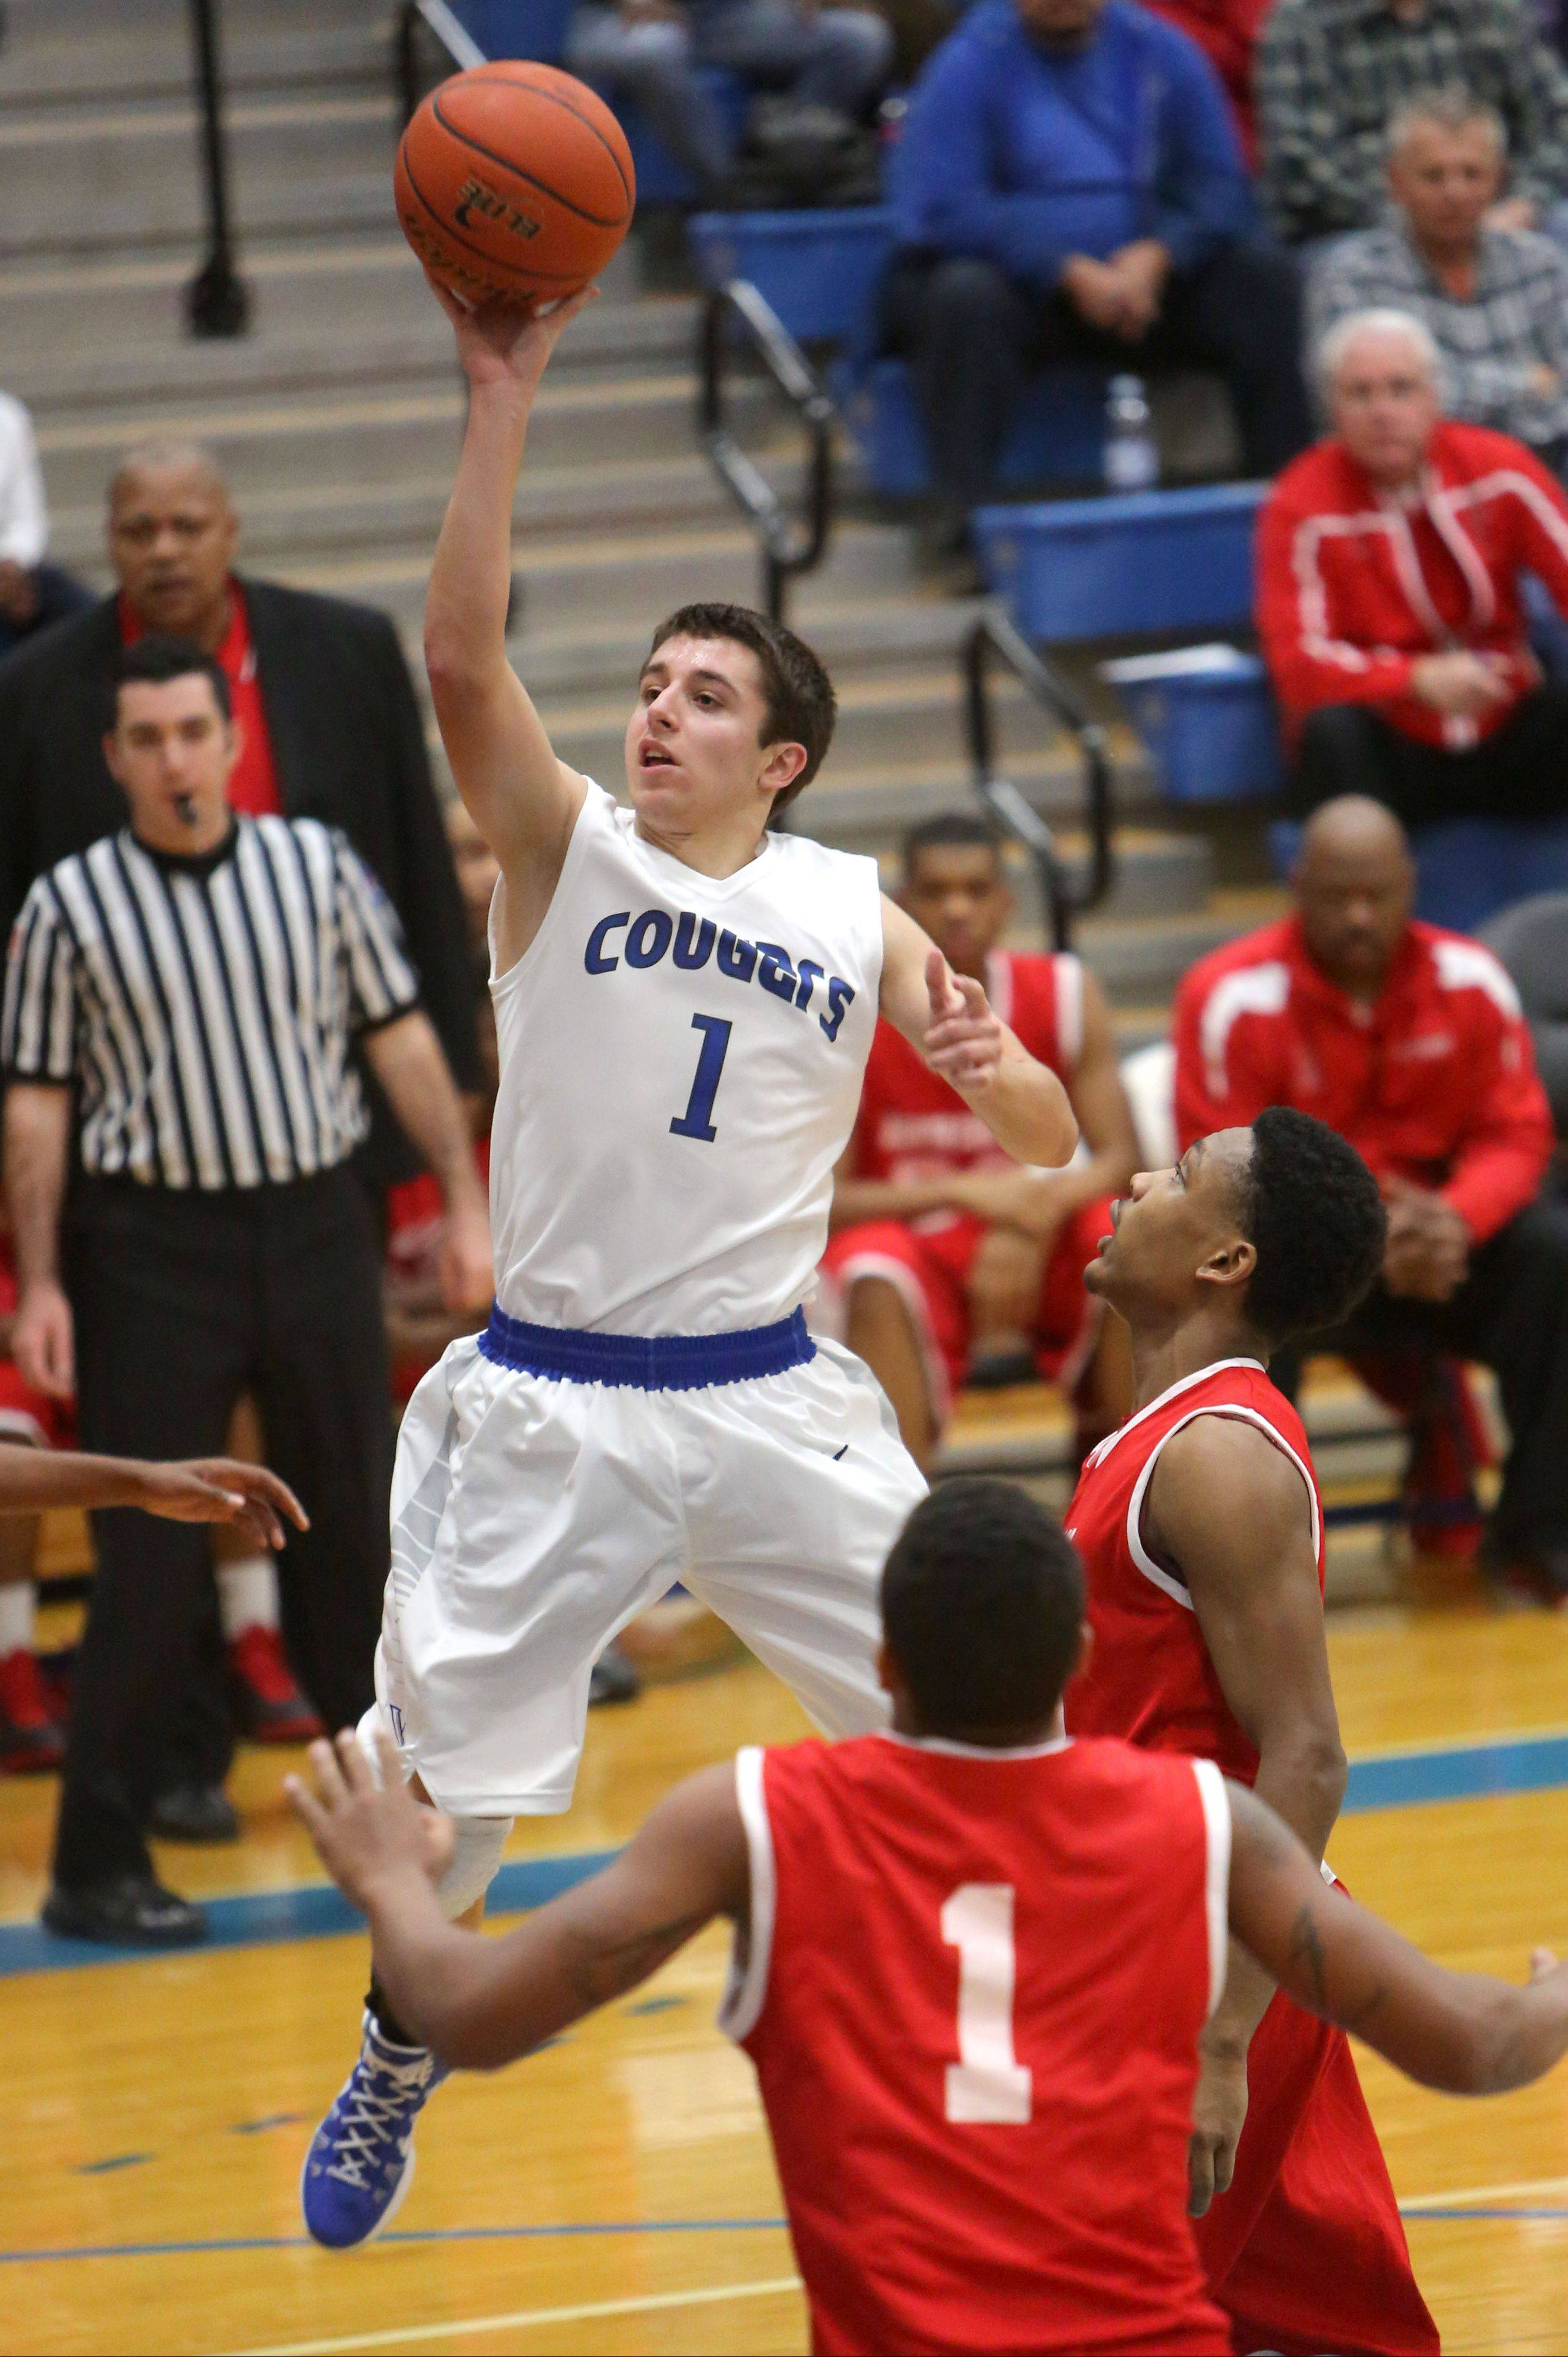 Vernon Hills' Robby Nardini drives on North Chicago's Arnold Shead and Jamero Shelton on Tuesday night in Vernon Hills.